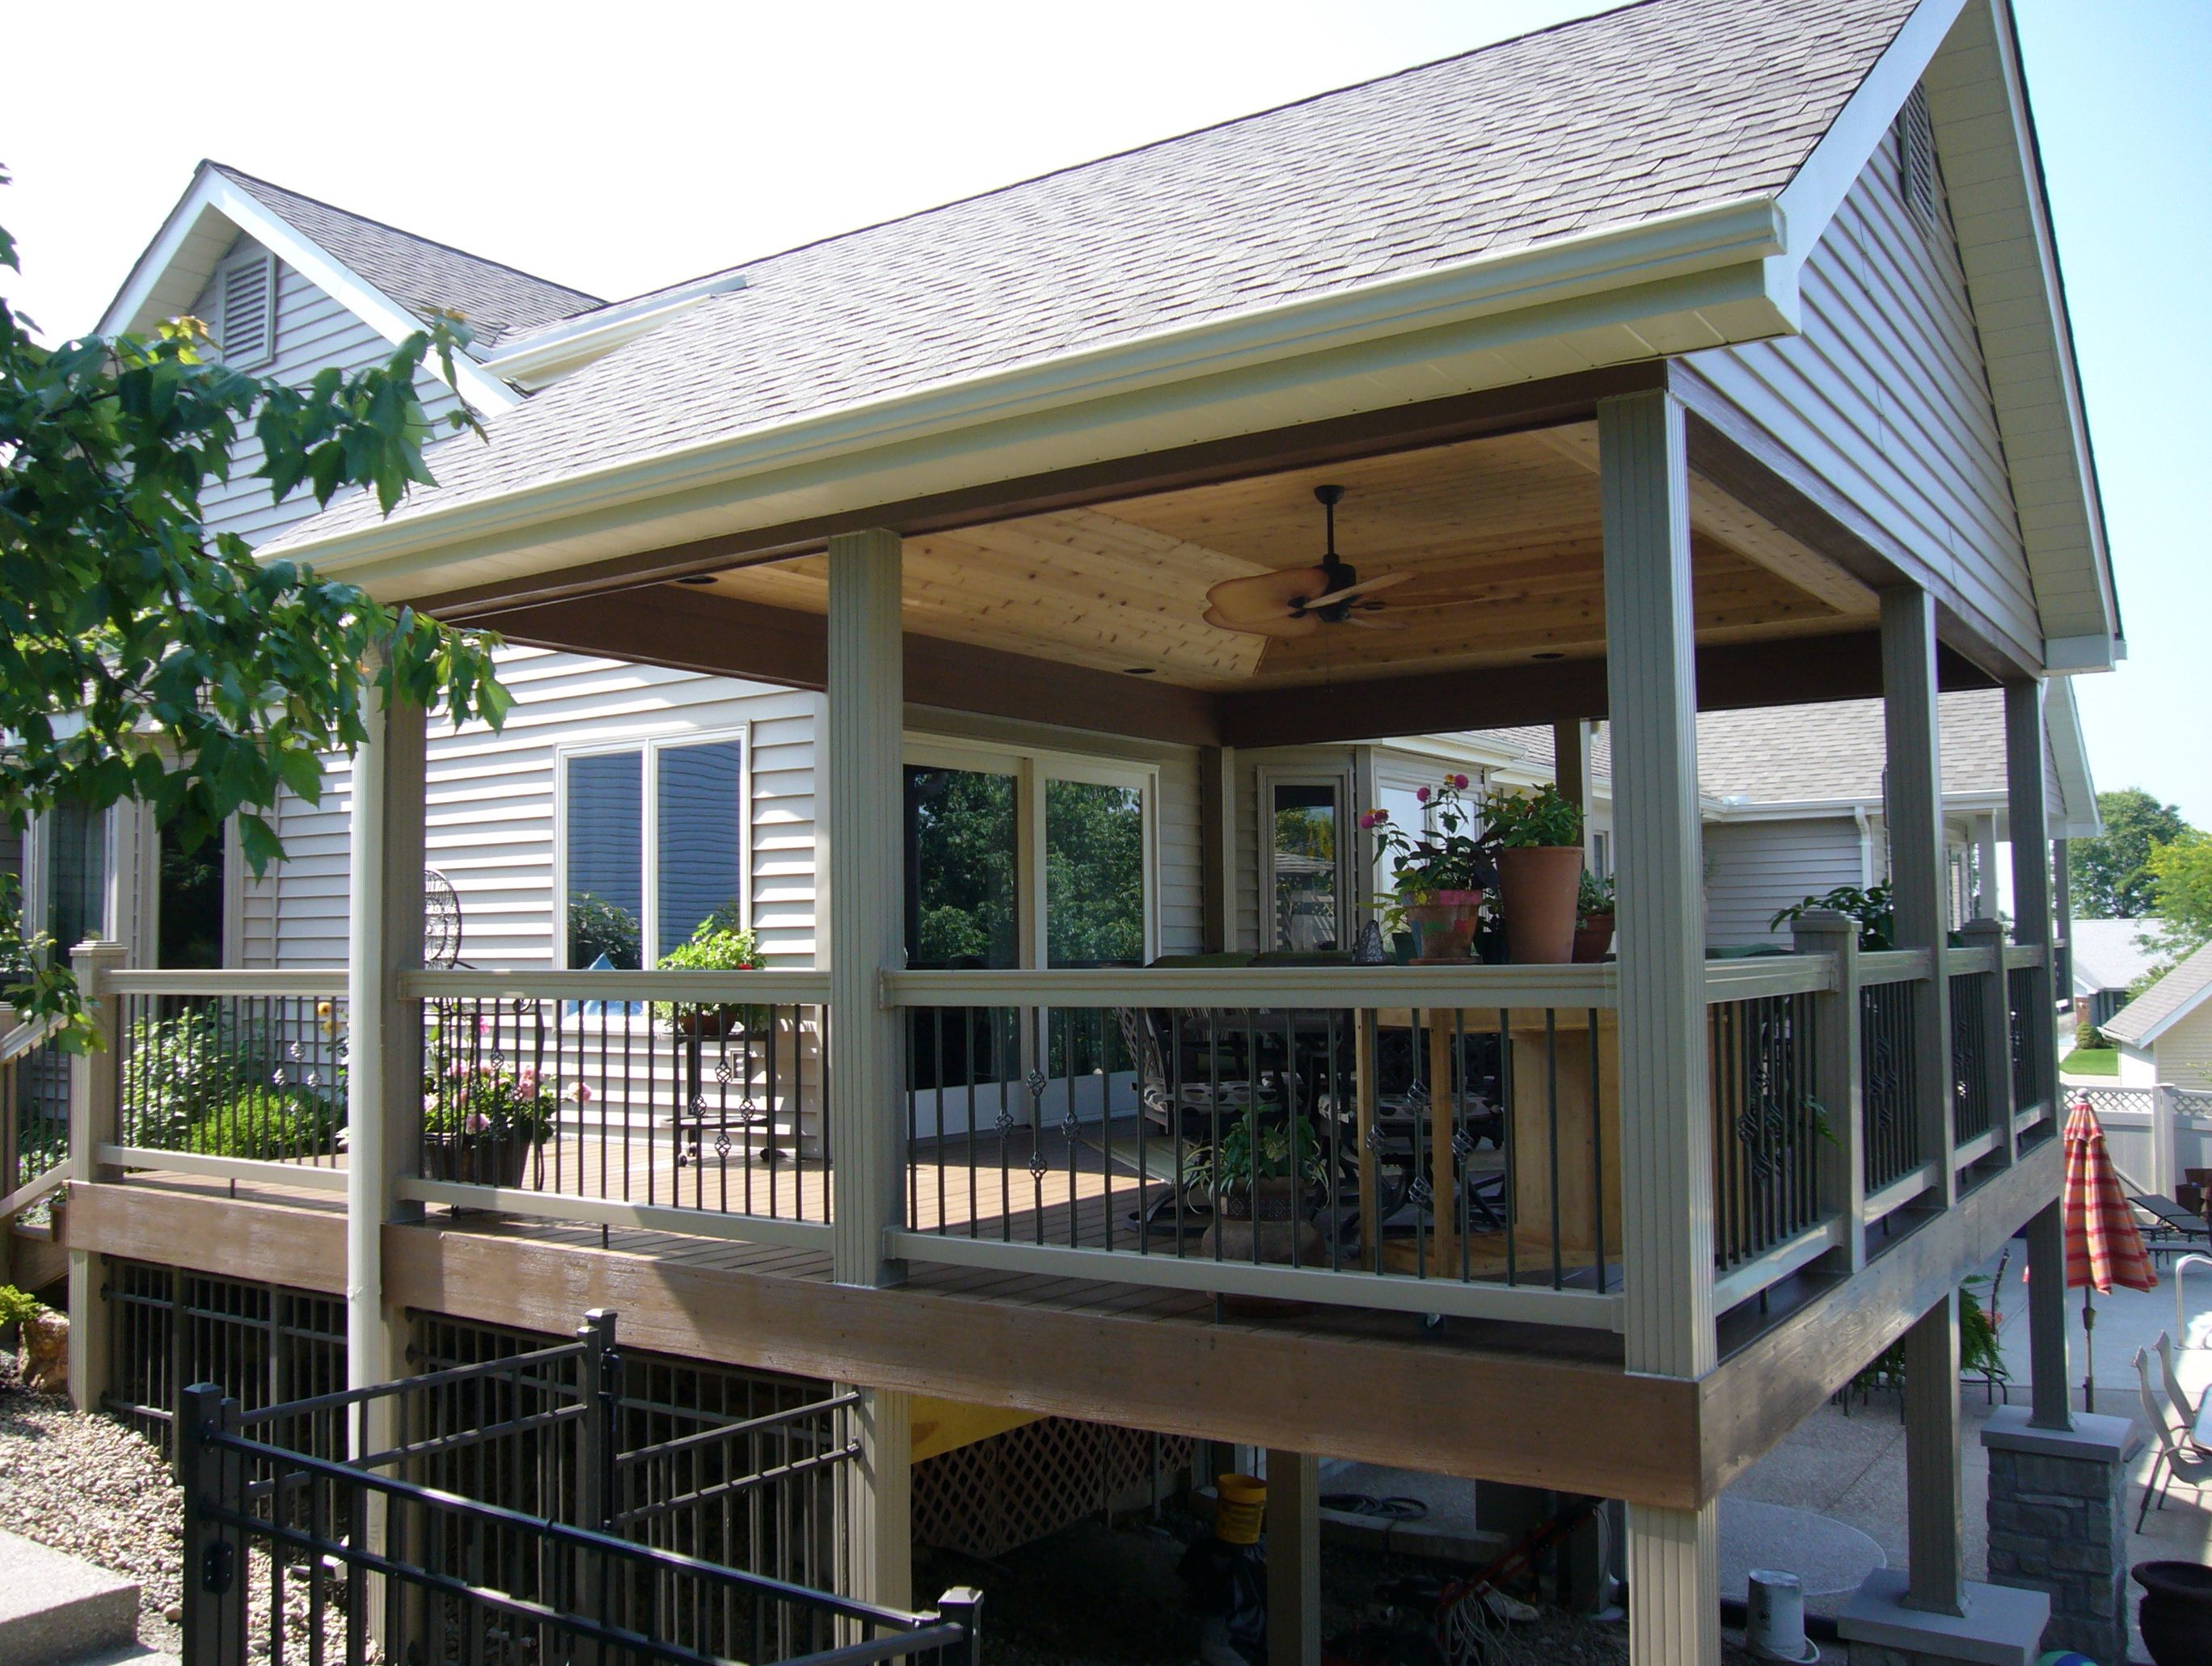 Outdoor Covered Deck Ideas Home Design Partially Small Elements And Style Designs Standalone Decks Plans Patio Deck Designs Deck Designs Backyard Covered Decks